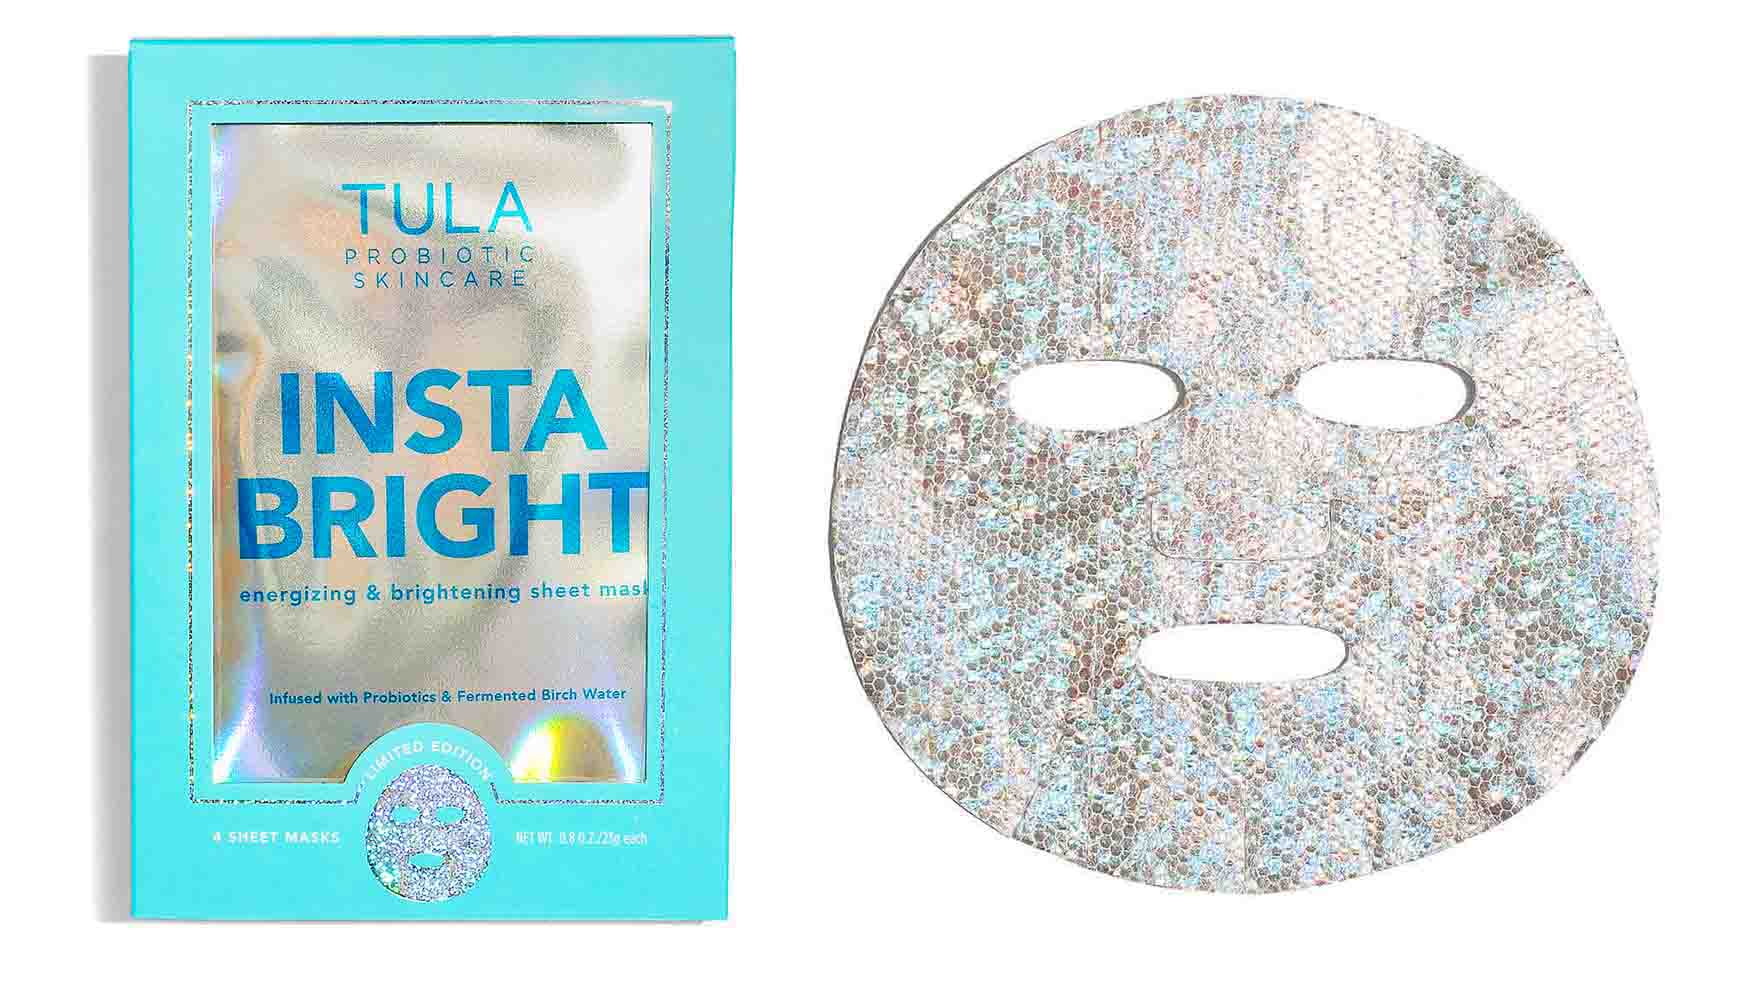 TULA insta bright mask - how to use